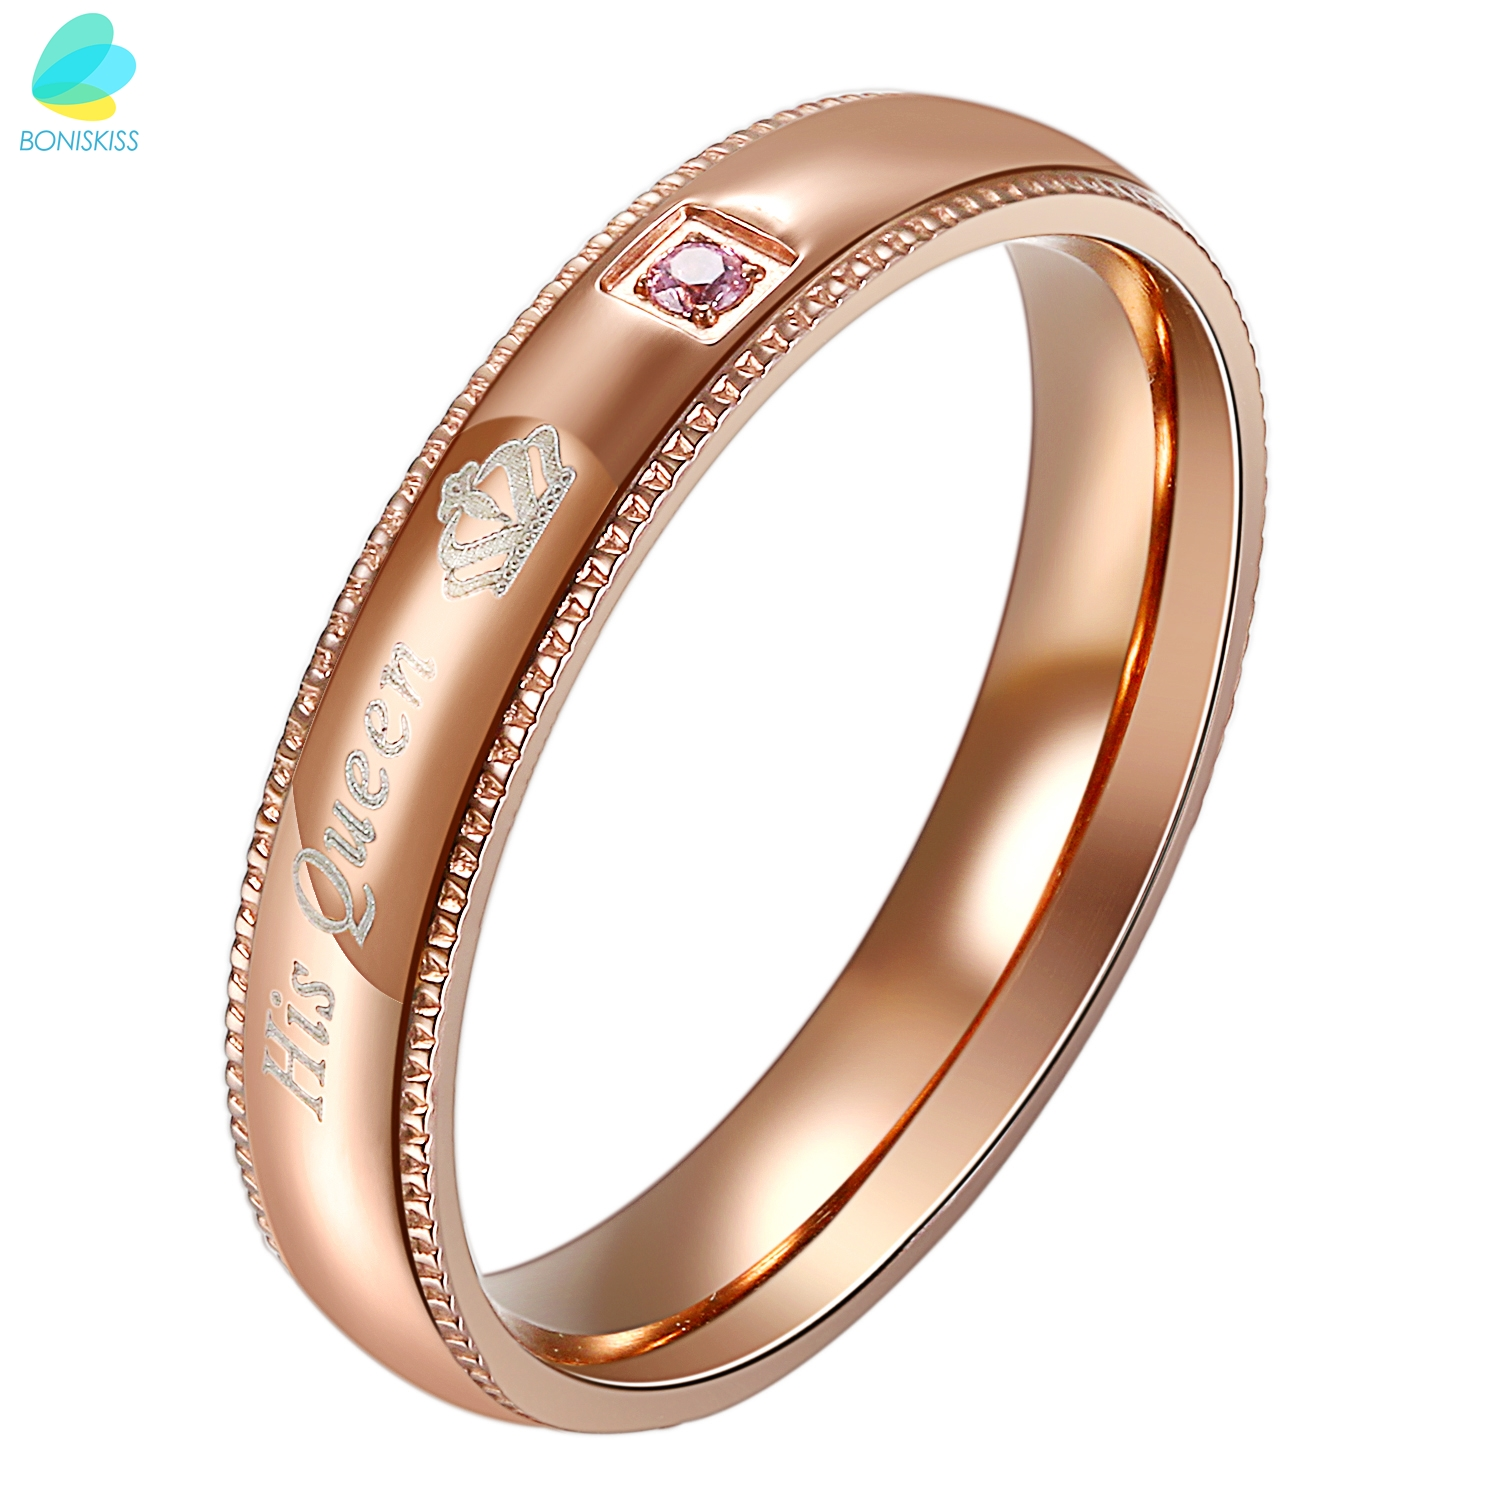 bride product hers hot charming couples gifts for engagement best qaaqsbhc dhgate cz steel his rings jewelry wedding ring stainless groom promise rbvajflbxsmayo band under lovers